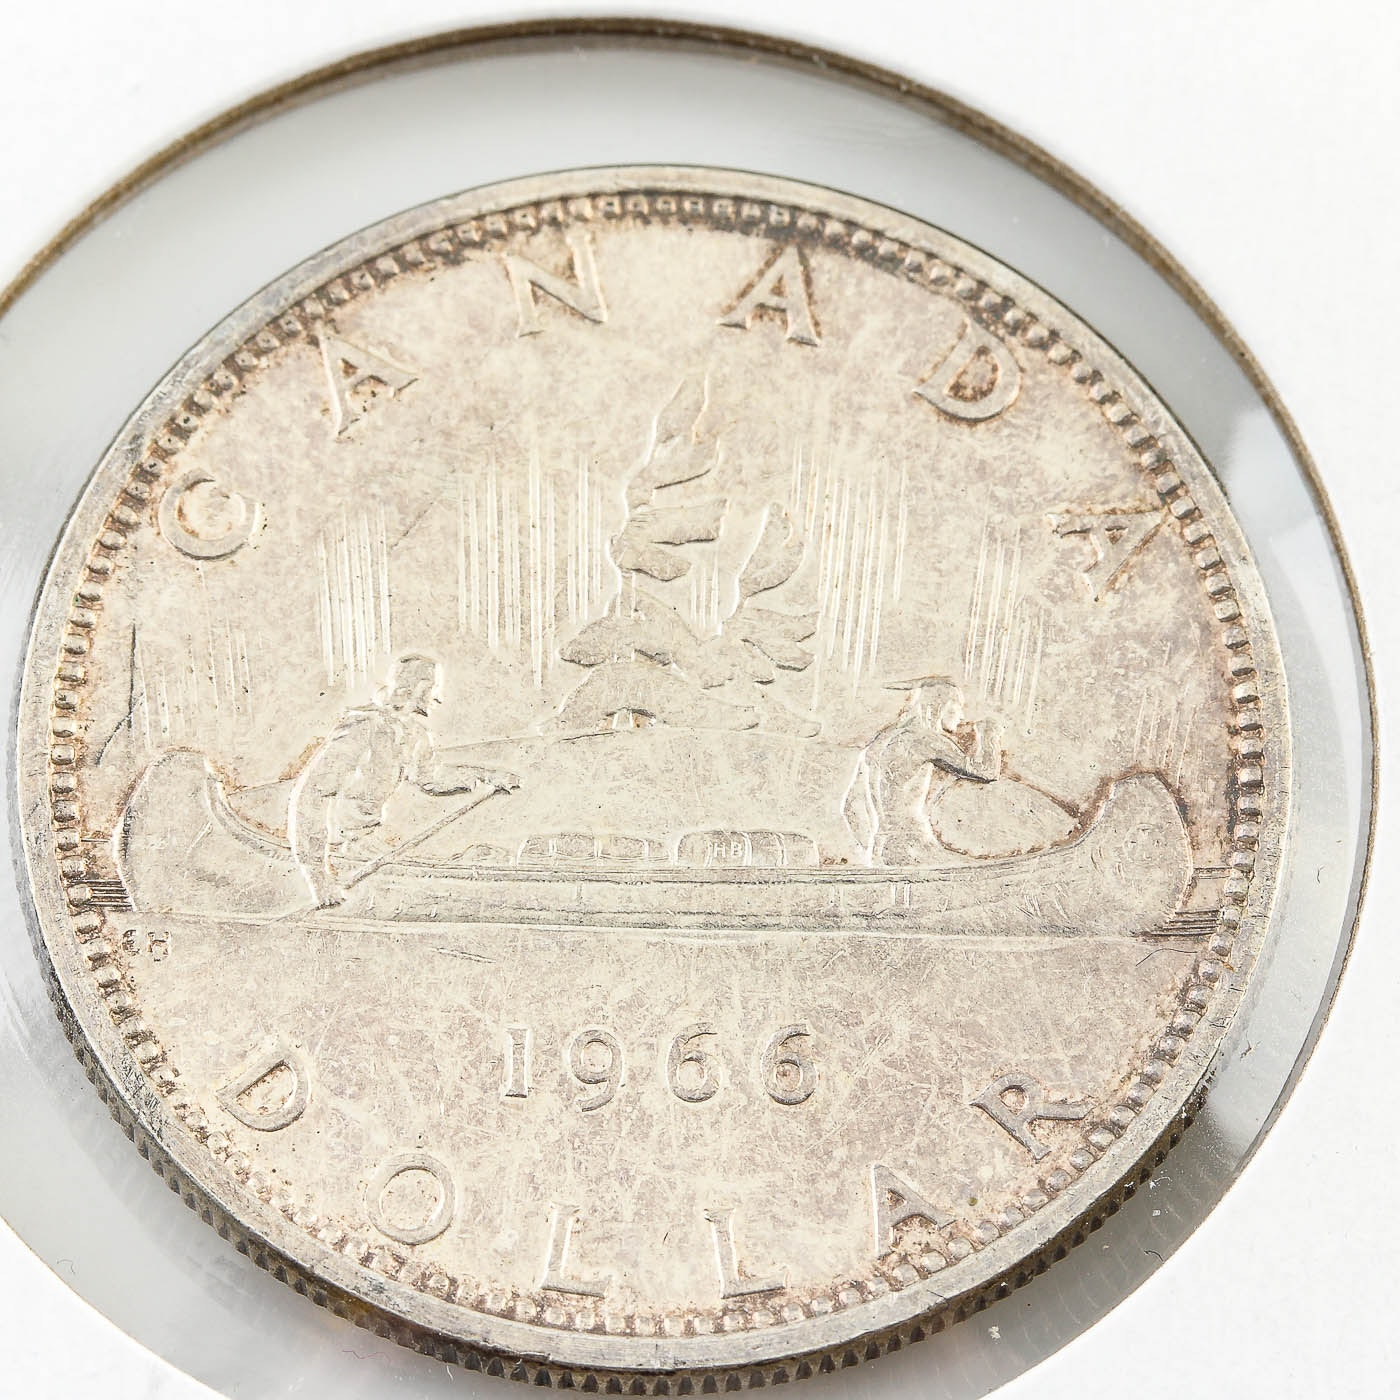 1966 Canadian Silver Proof Dollar